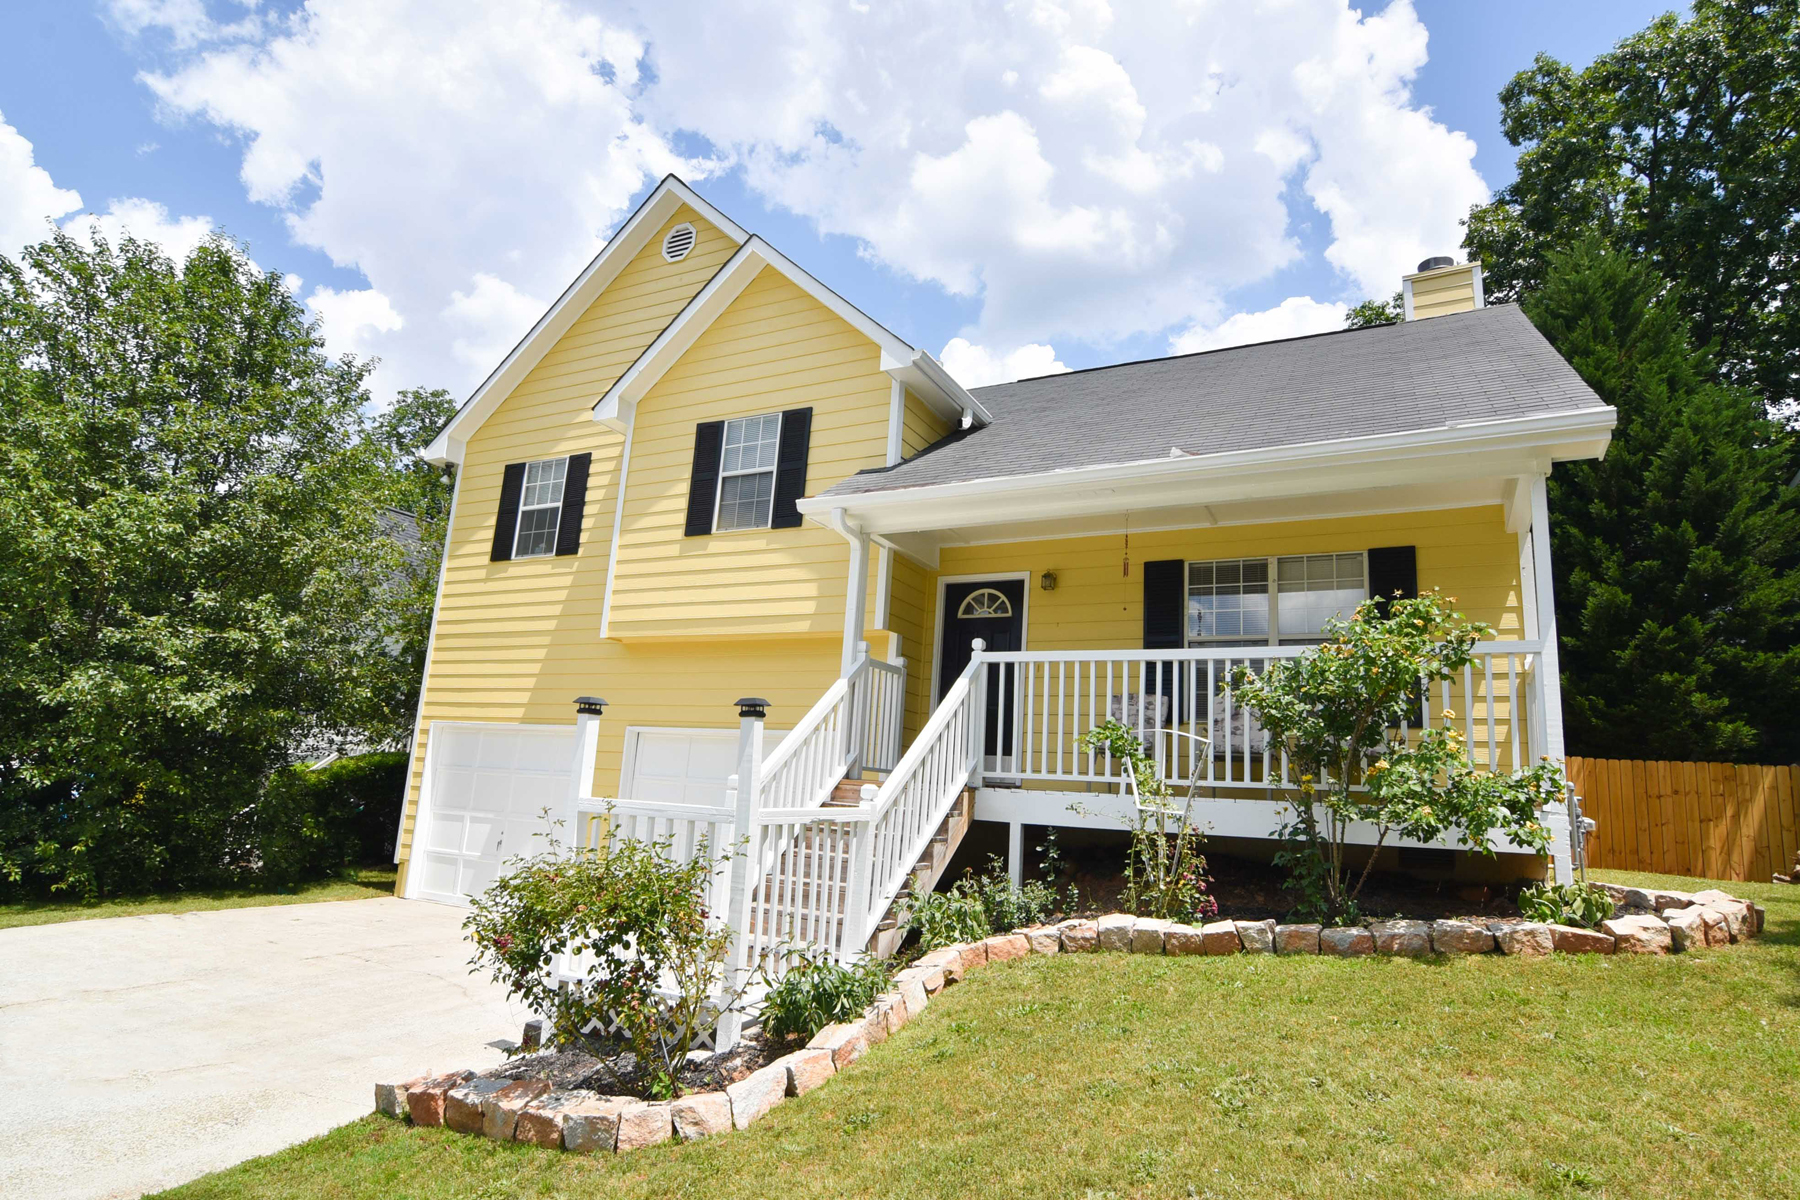 Single Family Home for Sale at Beautifully Maintained Smyrna Home 2752 Sanibel Ln Smyrna, Georgia, 30082 United States